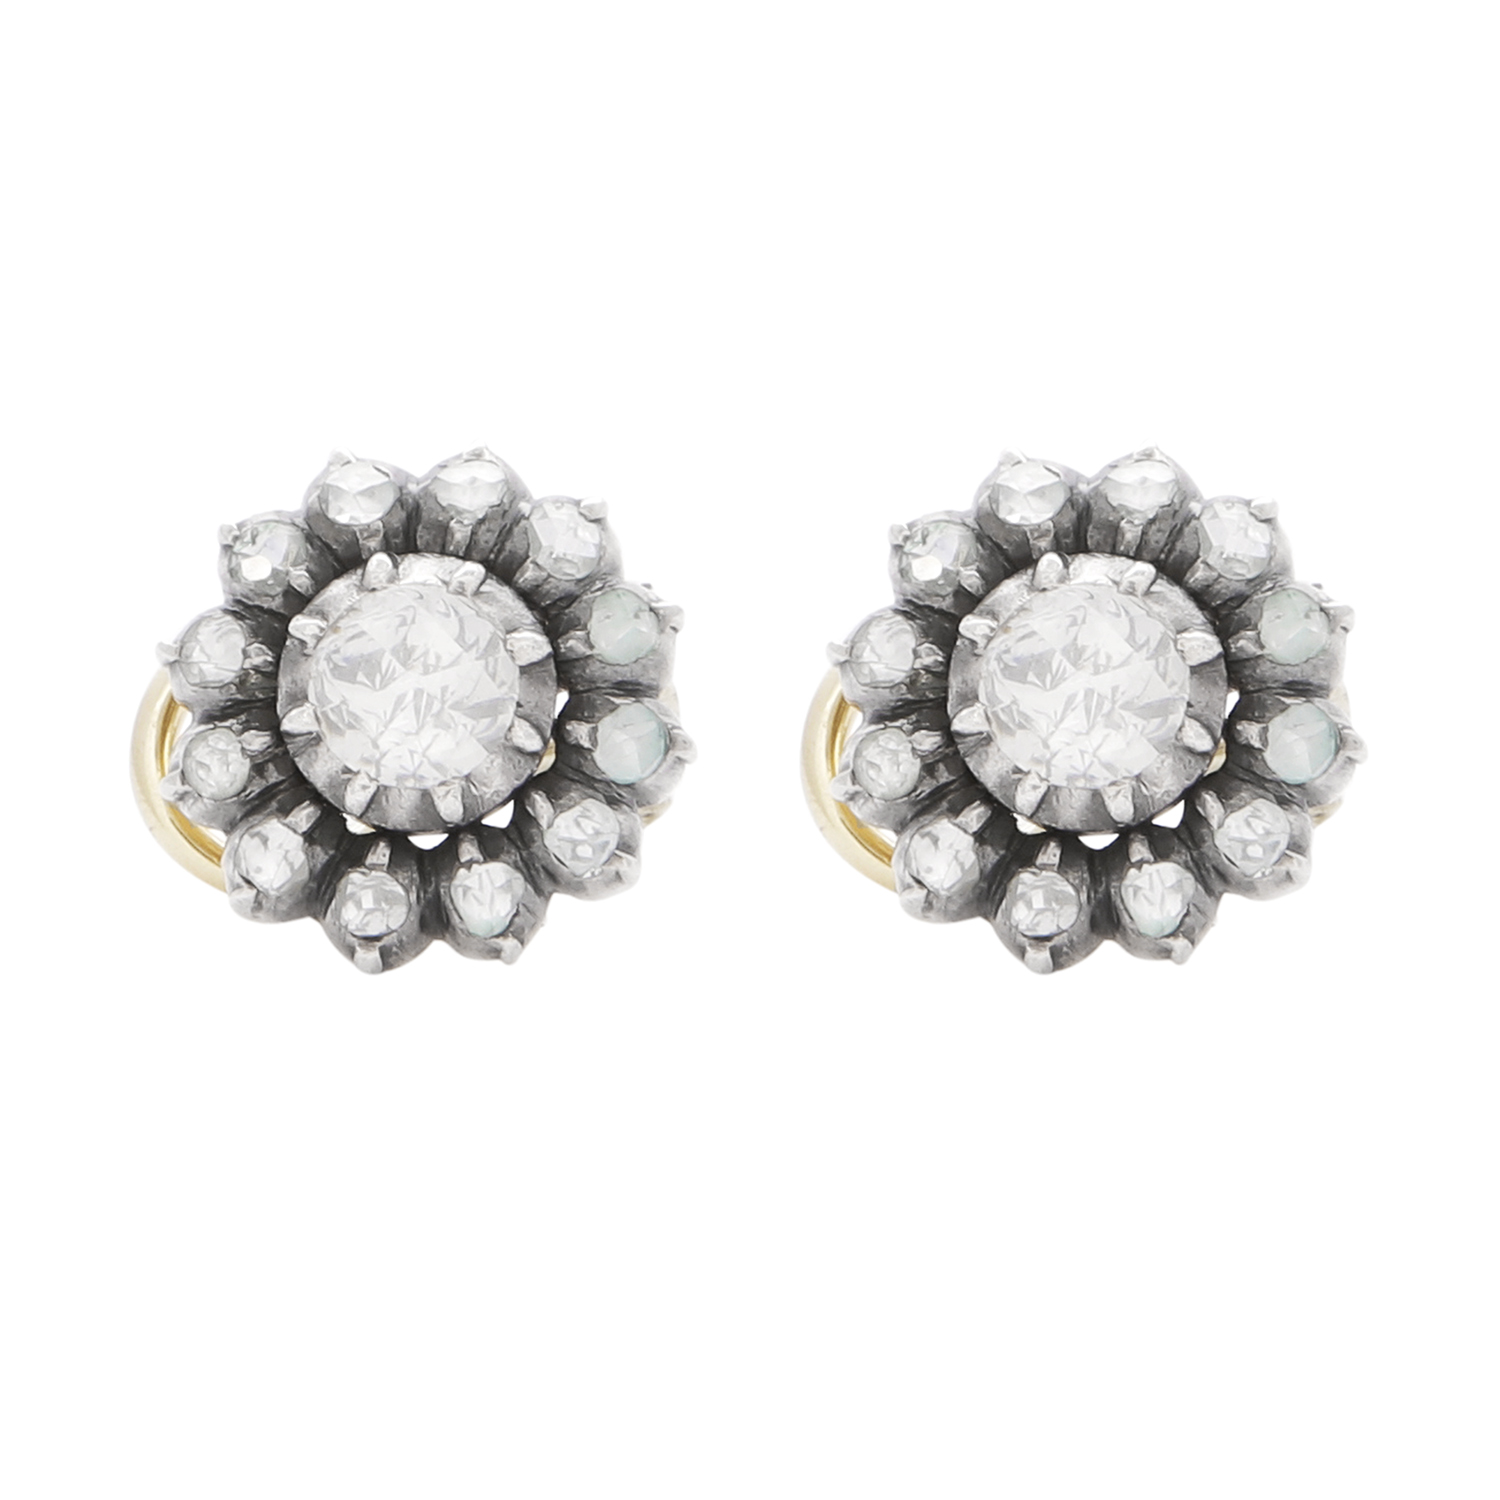 Los 40 - A PAIR OF DIAMOND CLUSTER EARRINGS, 19TH CENTURY in yellow gold and silver each set with a central